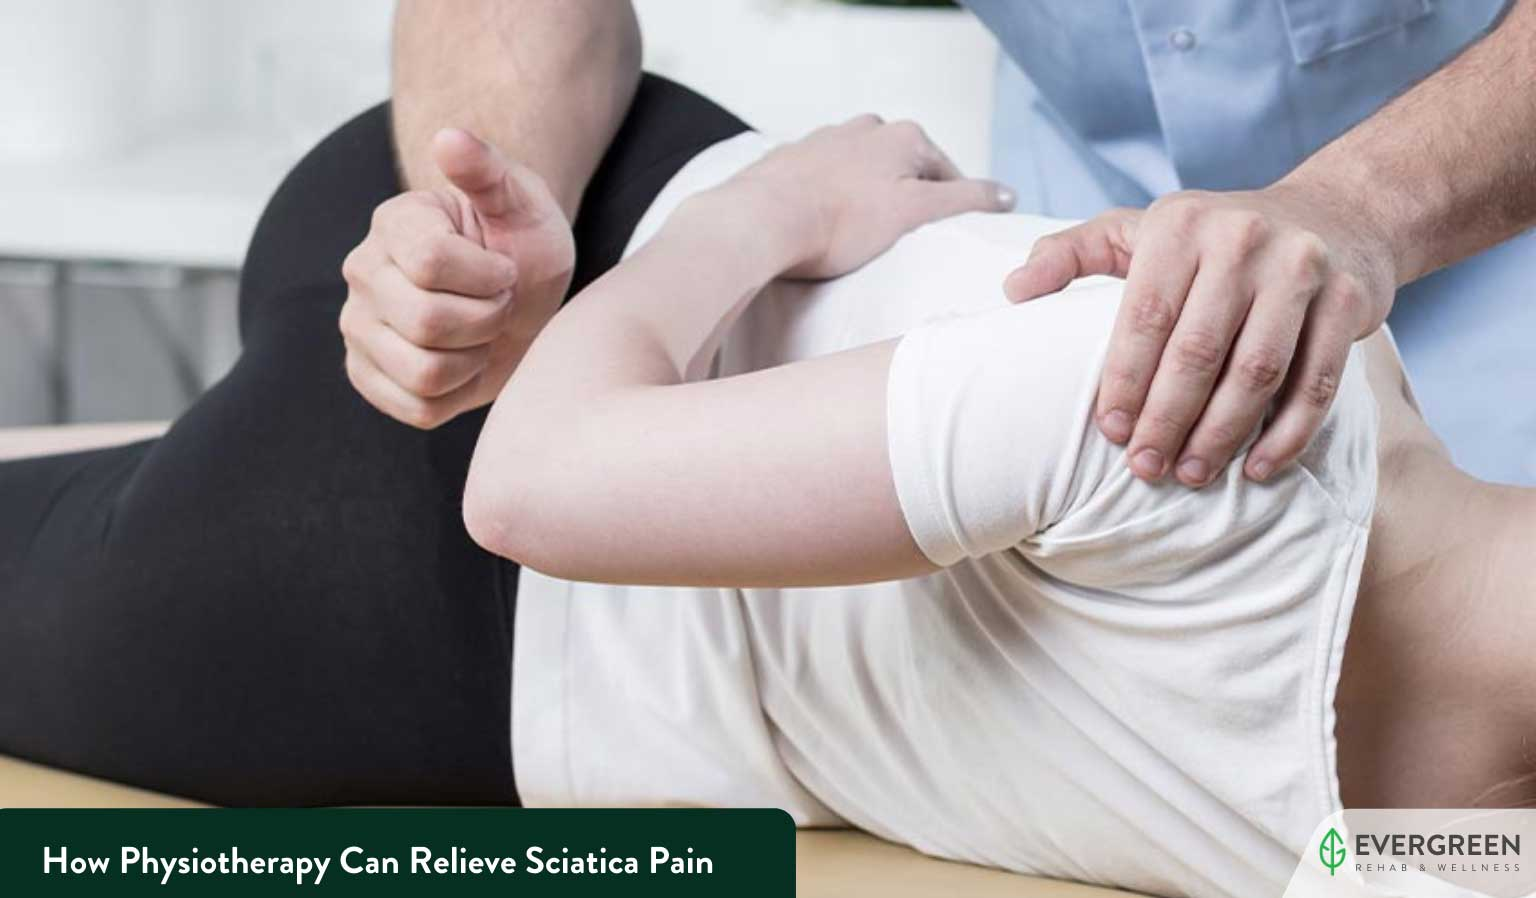 How Physiotherapy Can Relieve Sciatica Pain